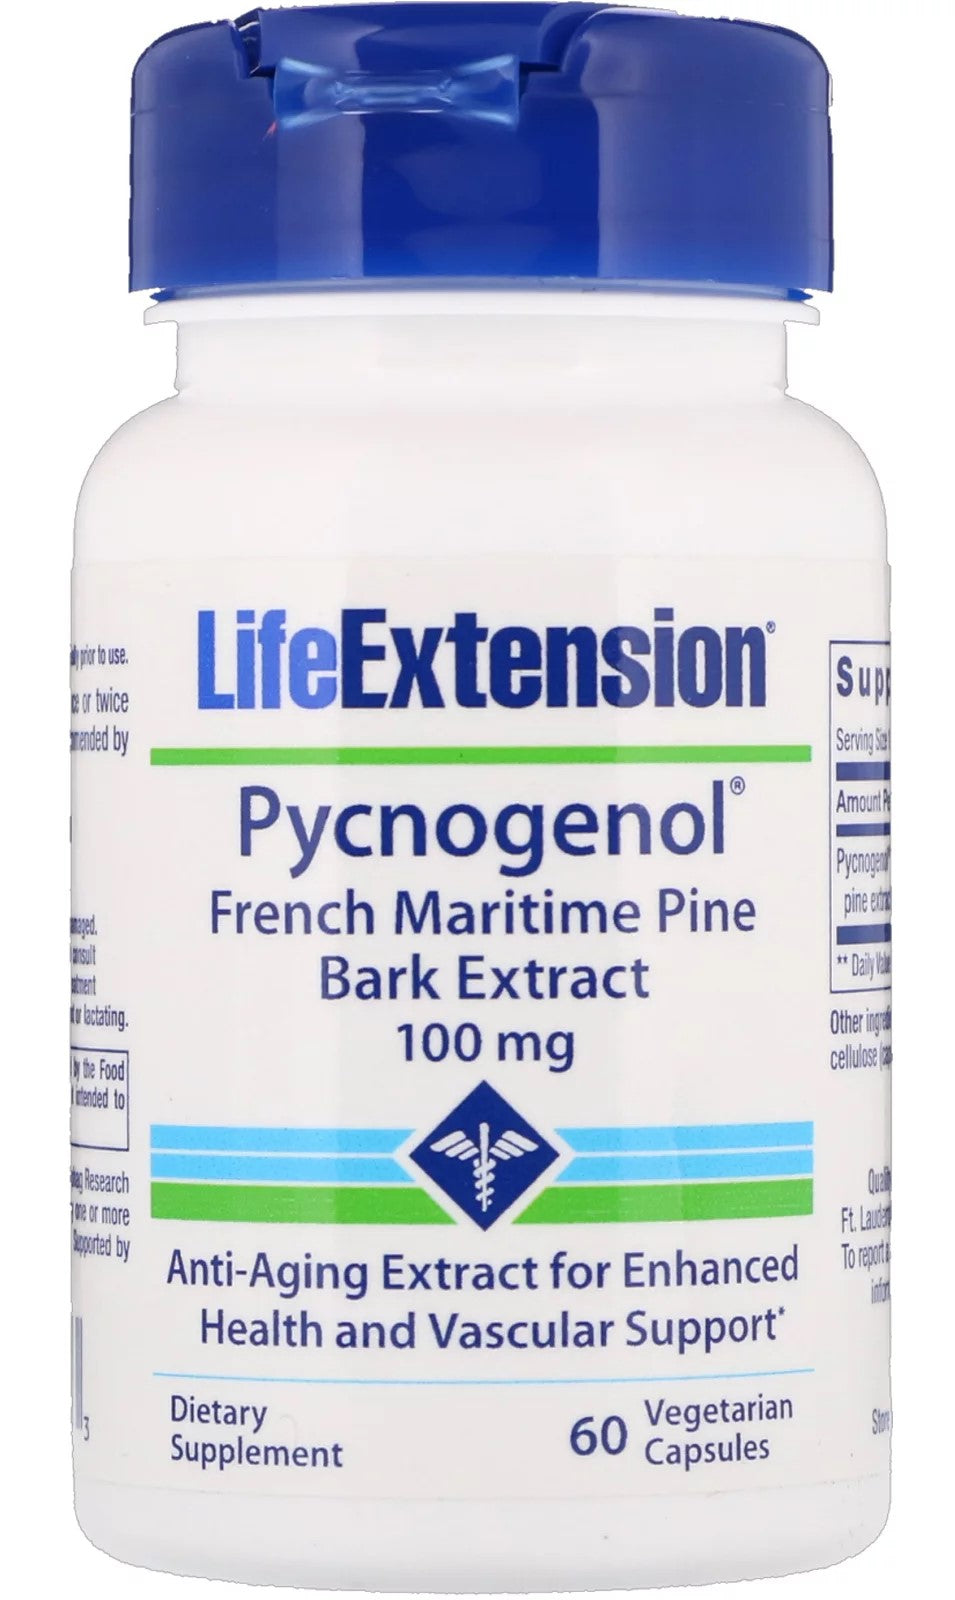 Pycnogenol French Maritime Pine Bark Extract, 100mg - 60 vcaps